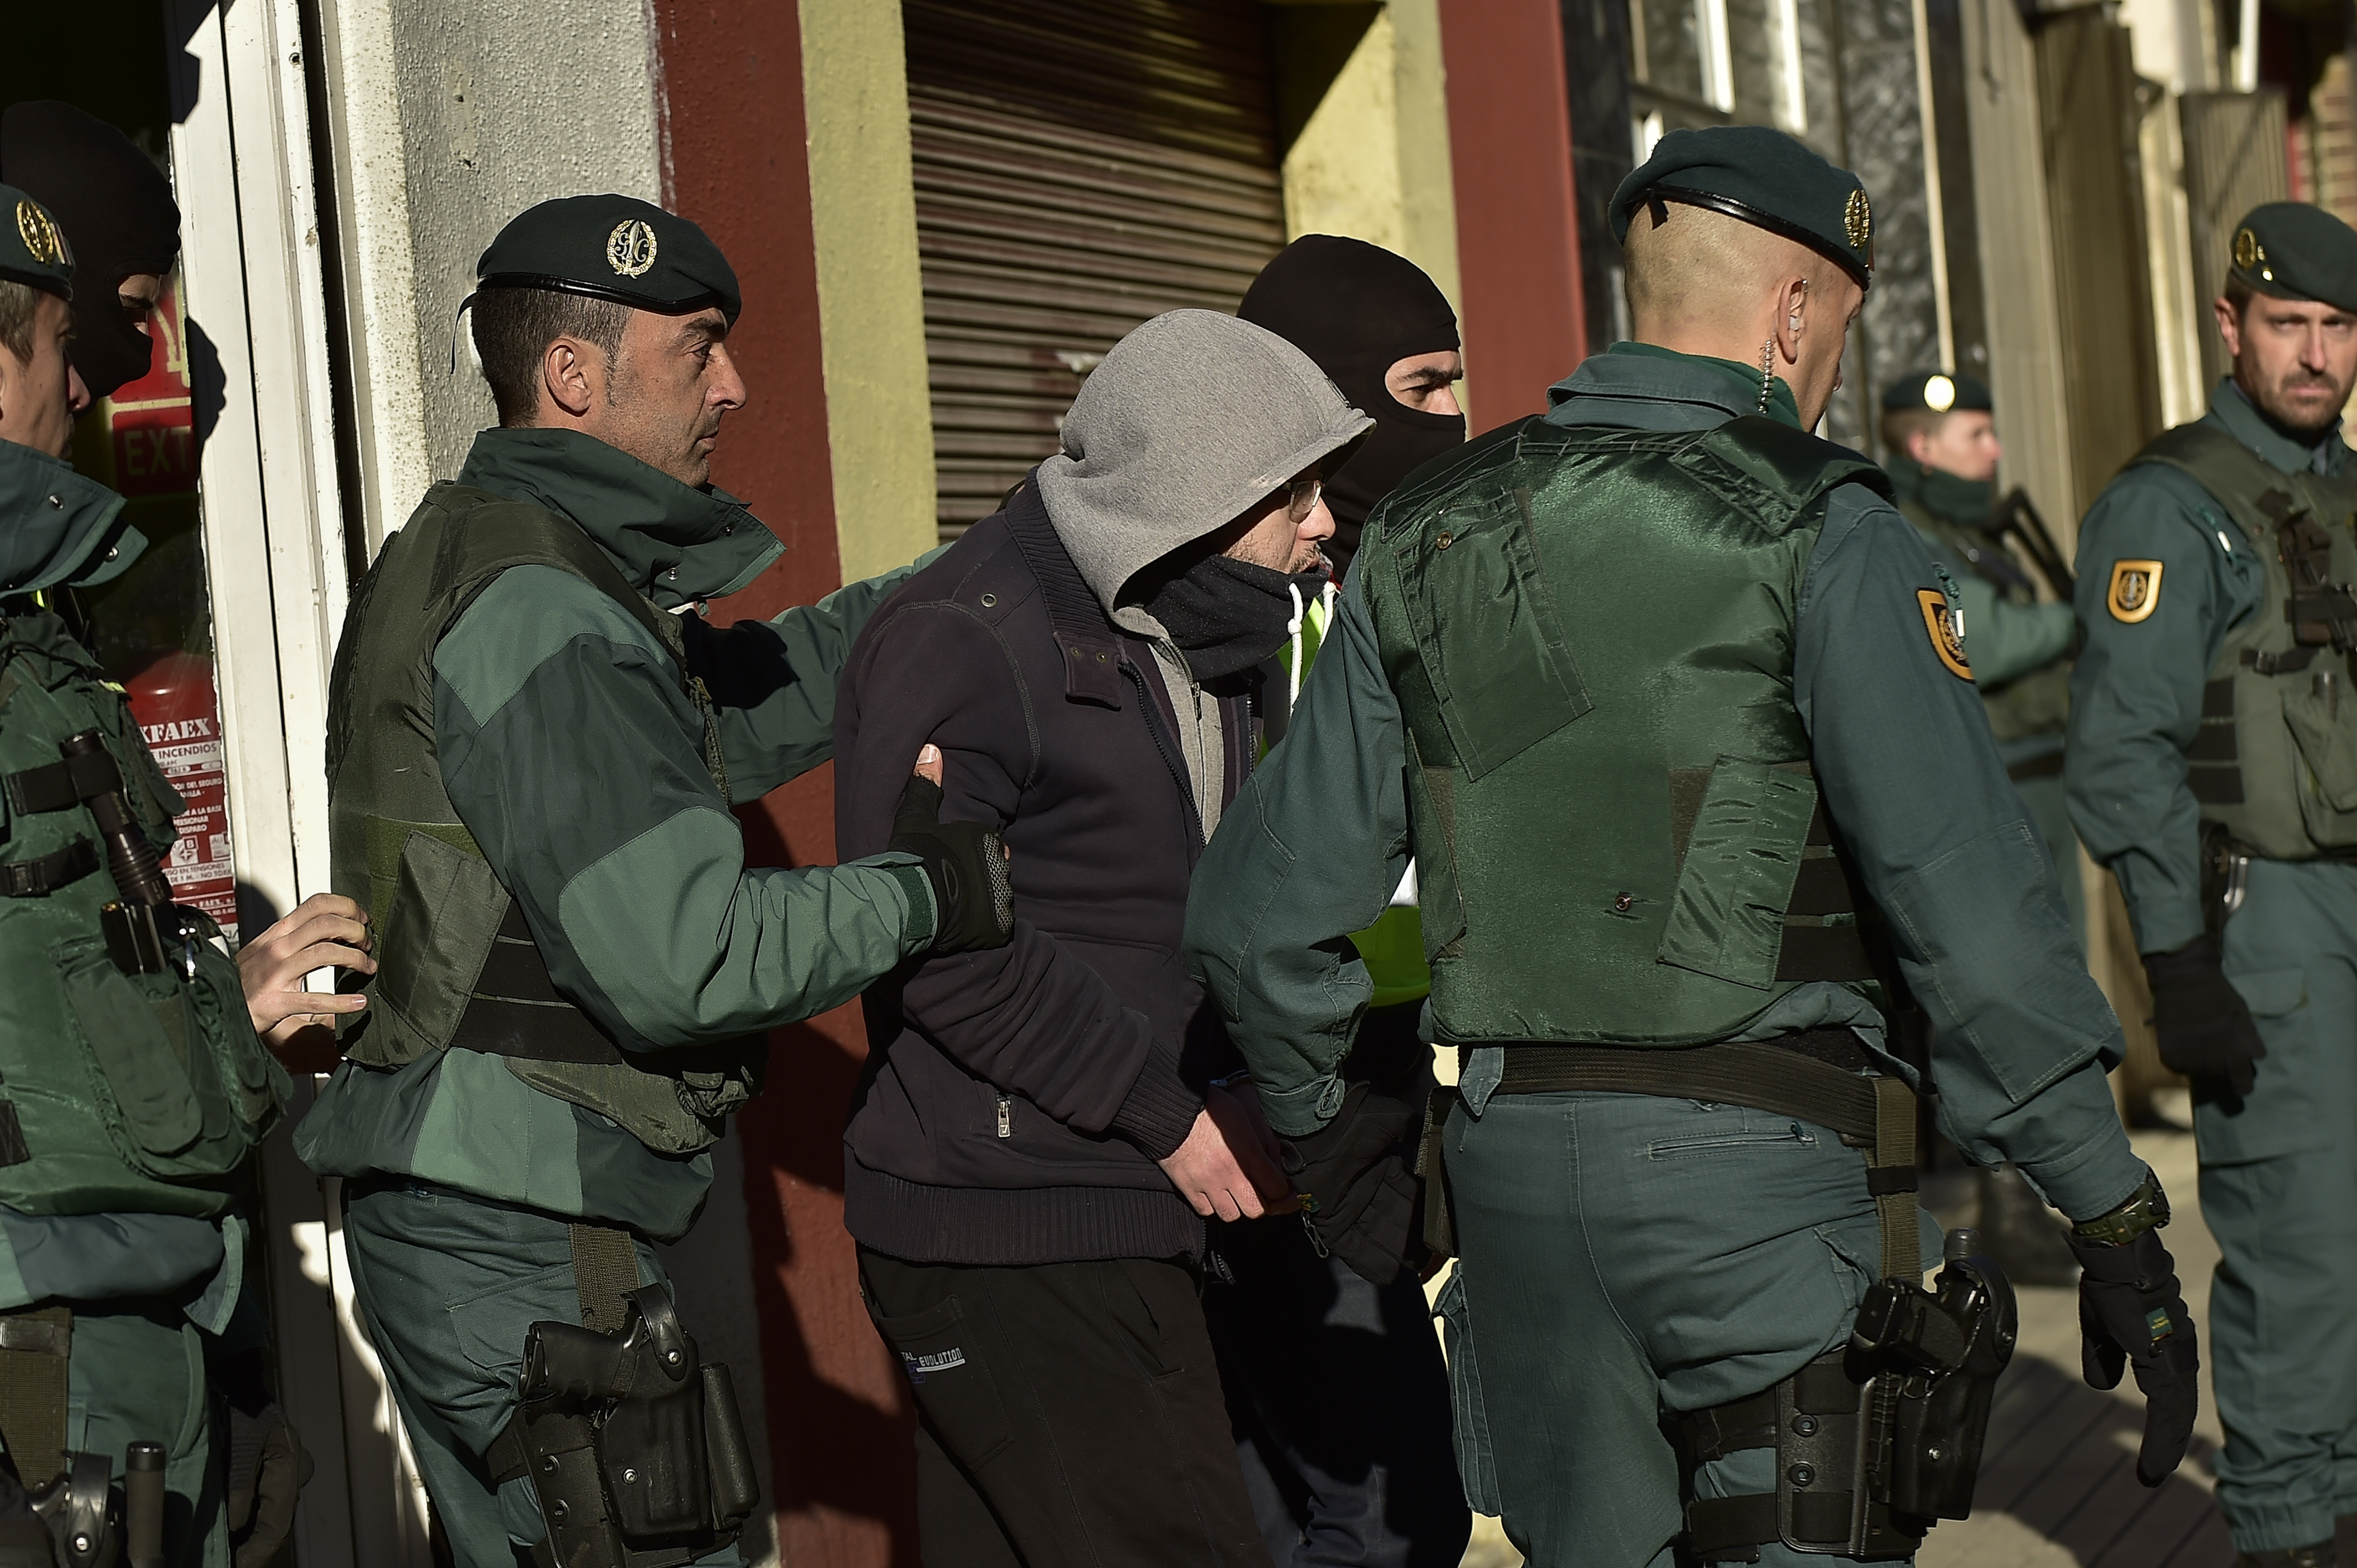 FILE - A unidentified Moroccan leaves a tea shop detained by the Spanish Civil Guard in Pamplona, northern Spain, Dec.1, 2015. Spanish authorities alleged the man was a member of a cell that recruited fighters for the Islamic State group in Syria.